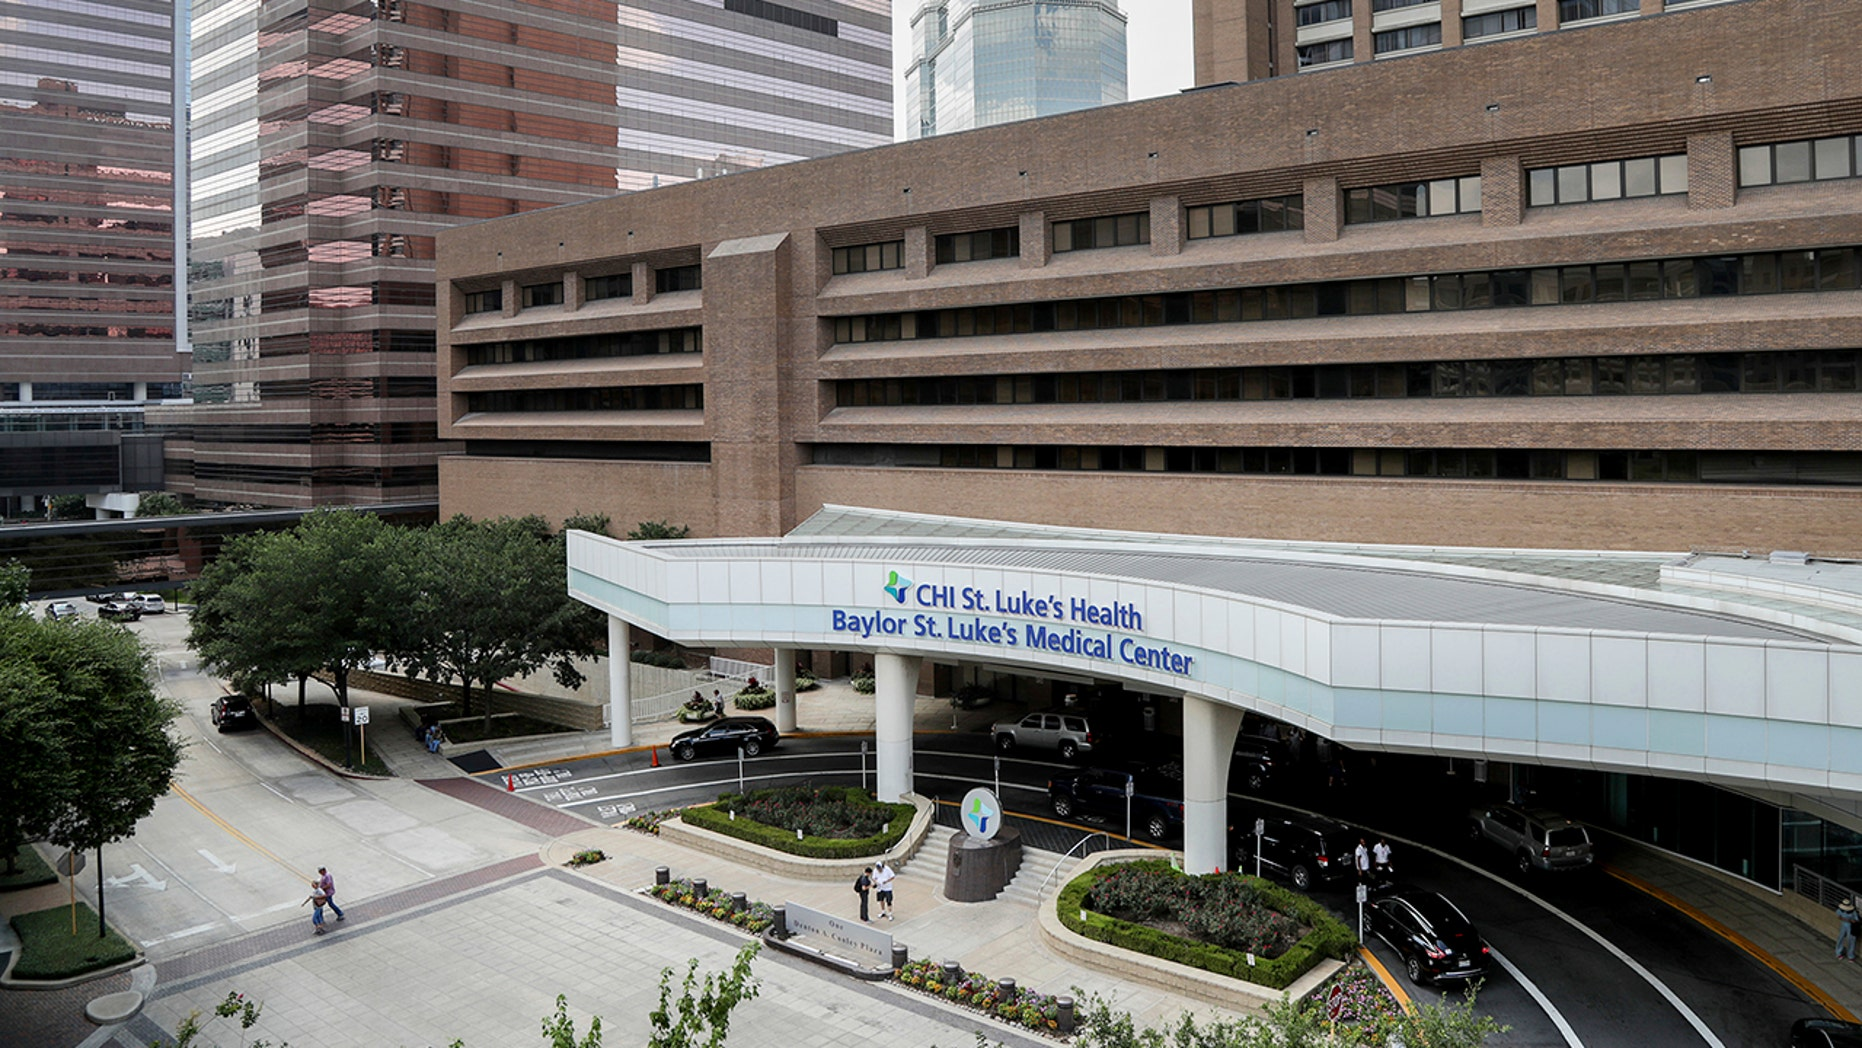 Baylor St. Luke's Medical Center has suspended all medical procedures in its renowned heart transplant program following the deaths this year of at least three patients.